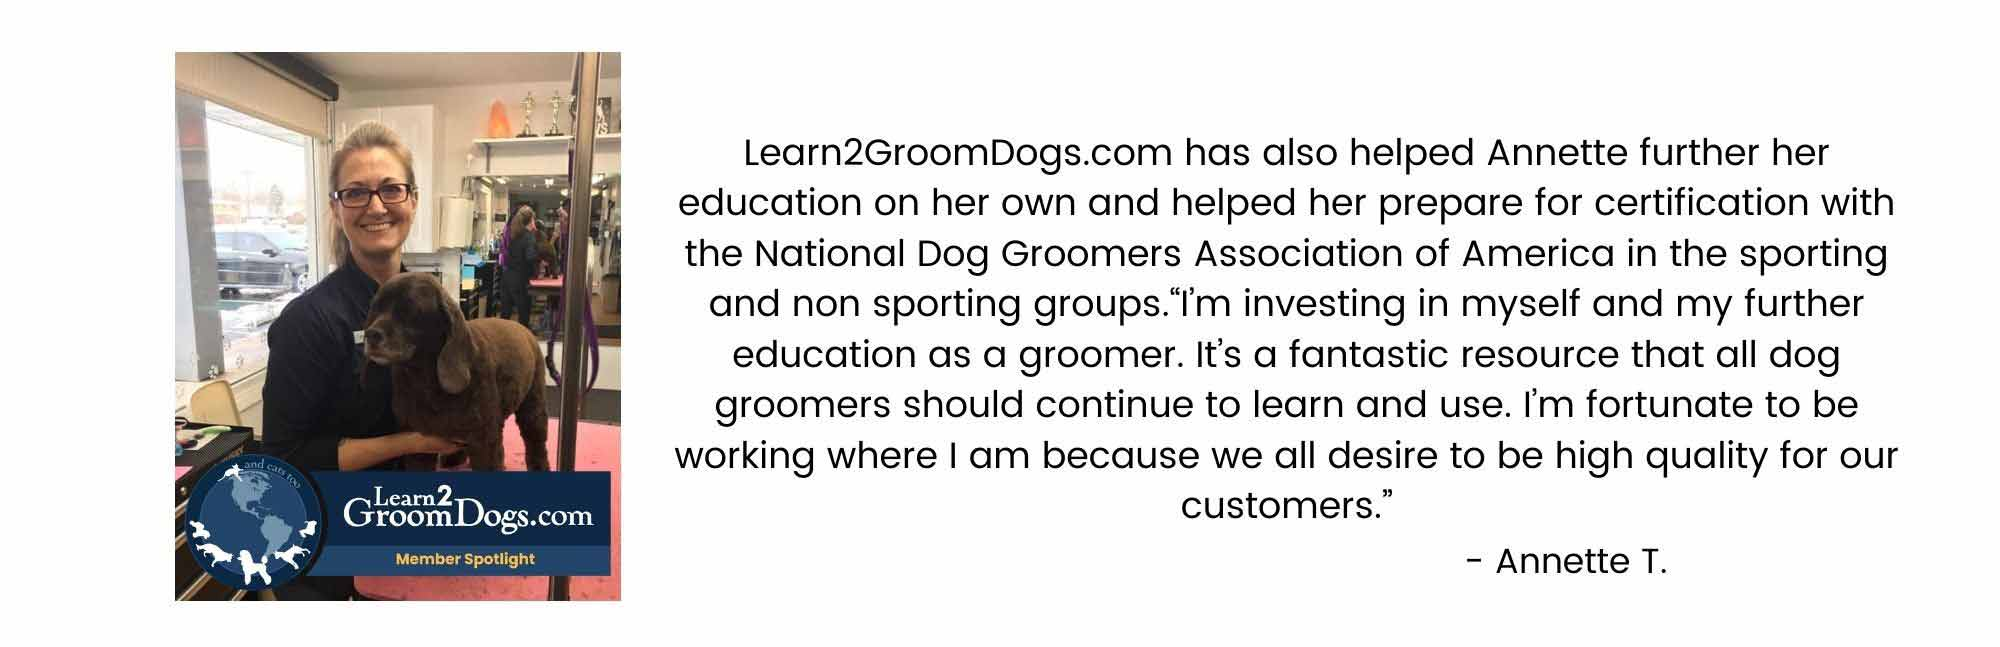 Annette T's Learn2GroomDogs.com Success Story